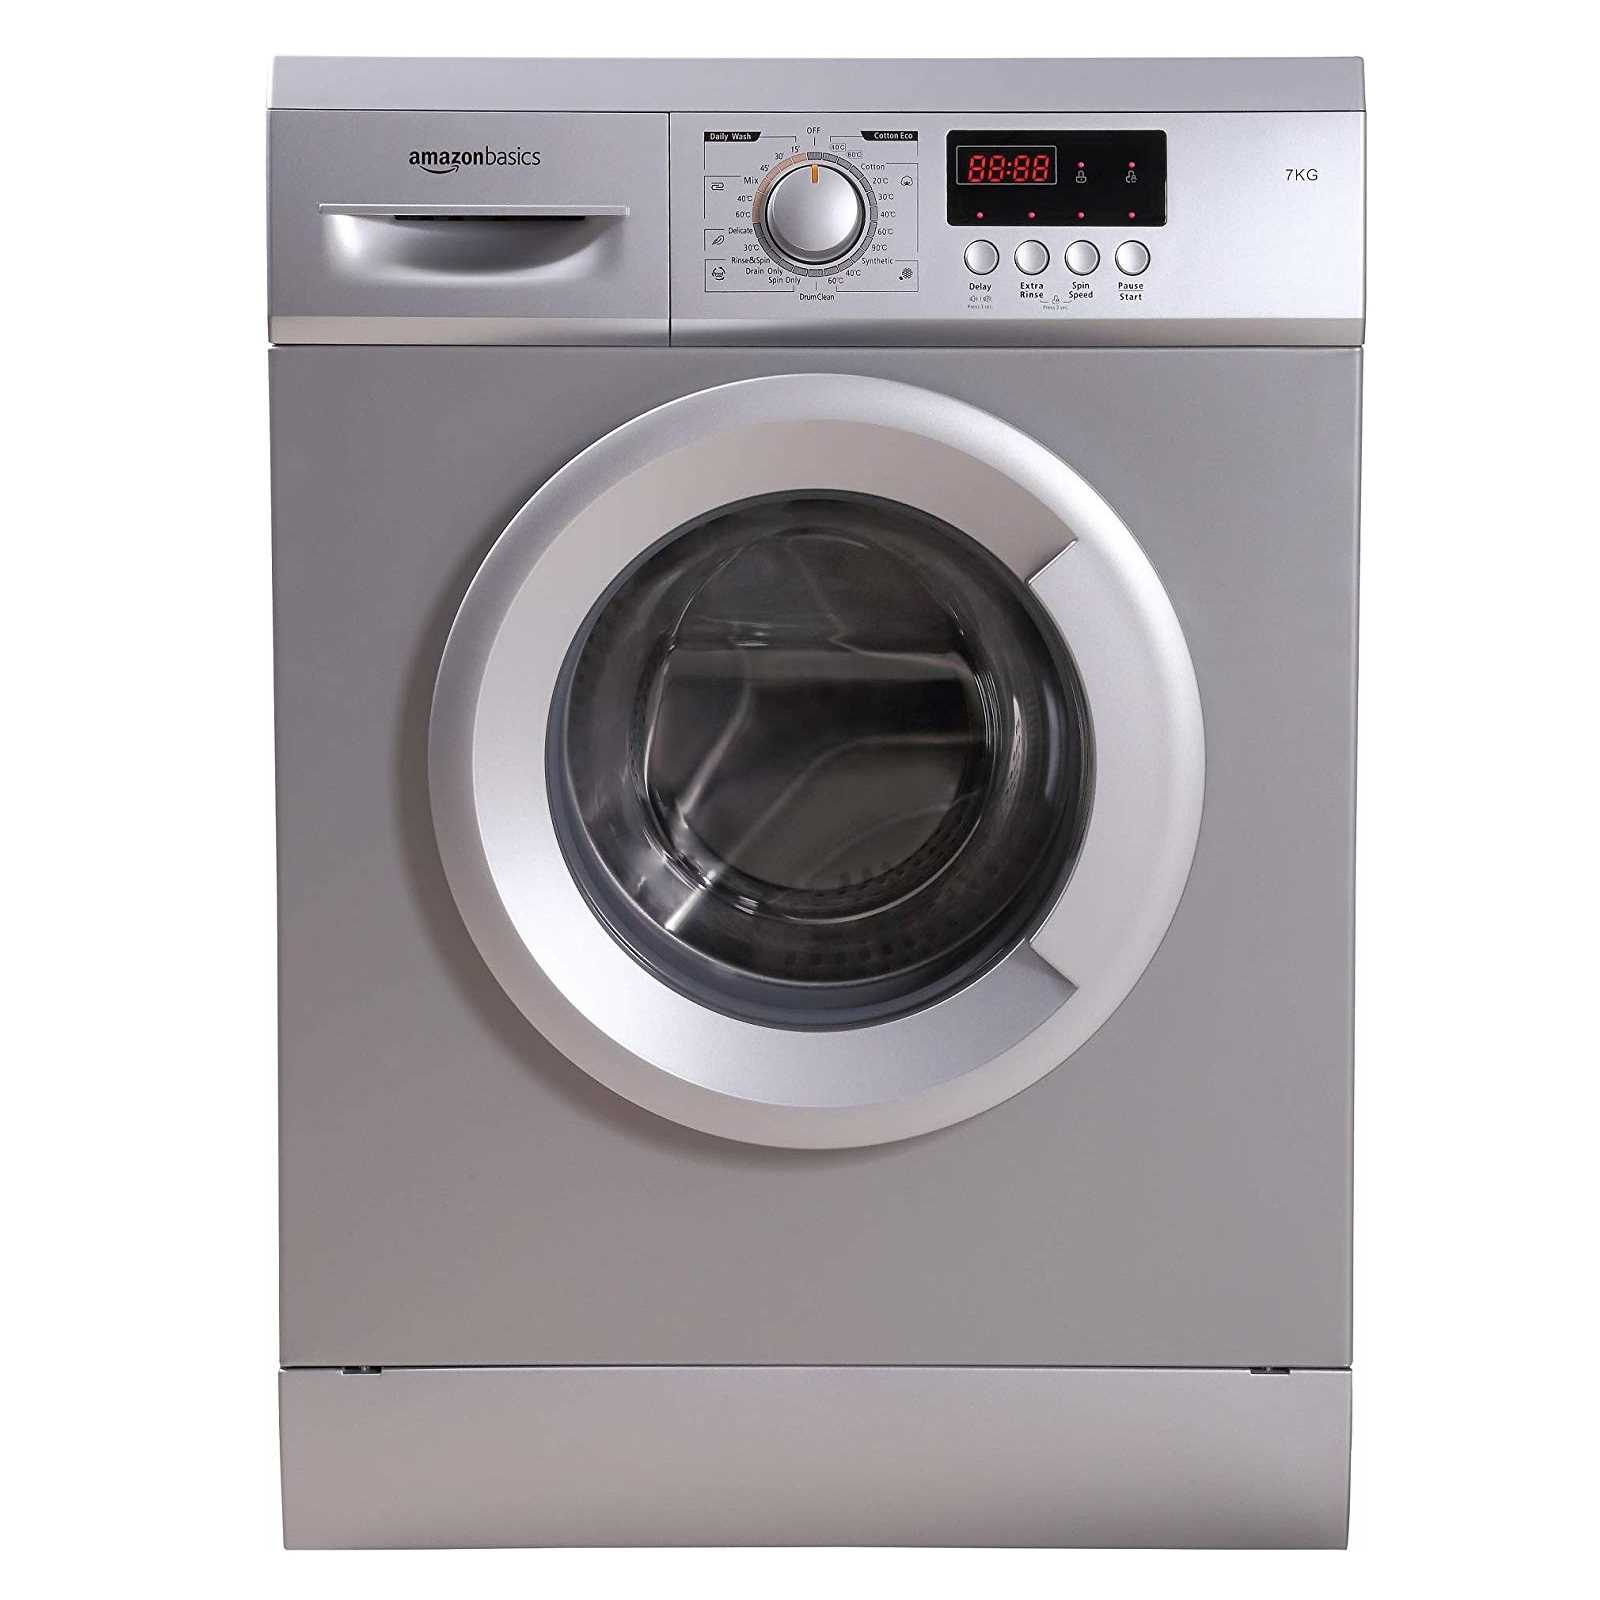 AmazonBasics AB7FAFL009 7 Kg Fully Automatic Front Loading Washing Machine